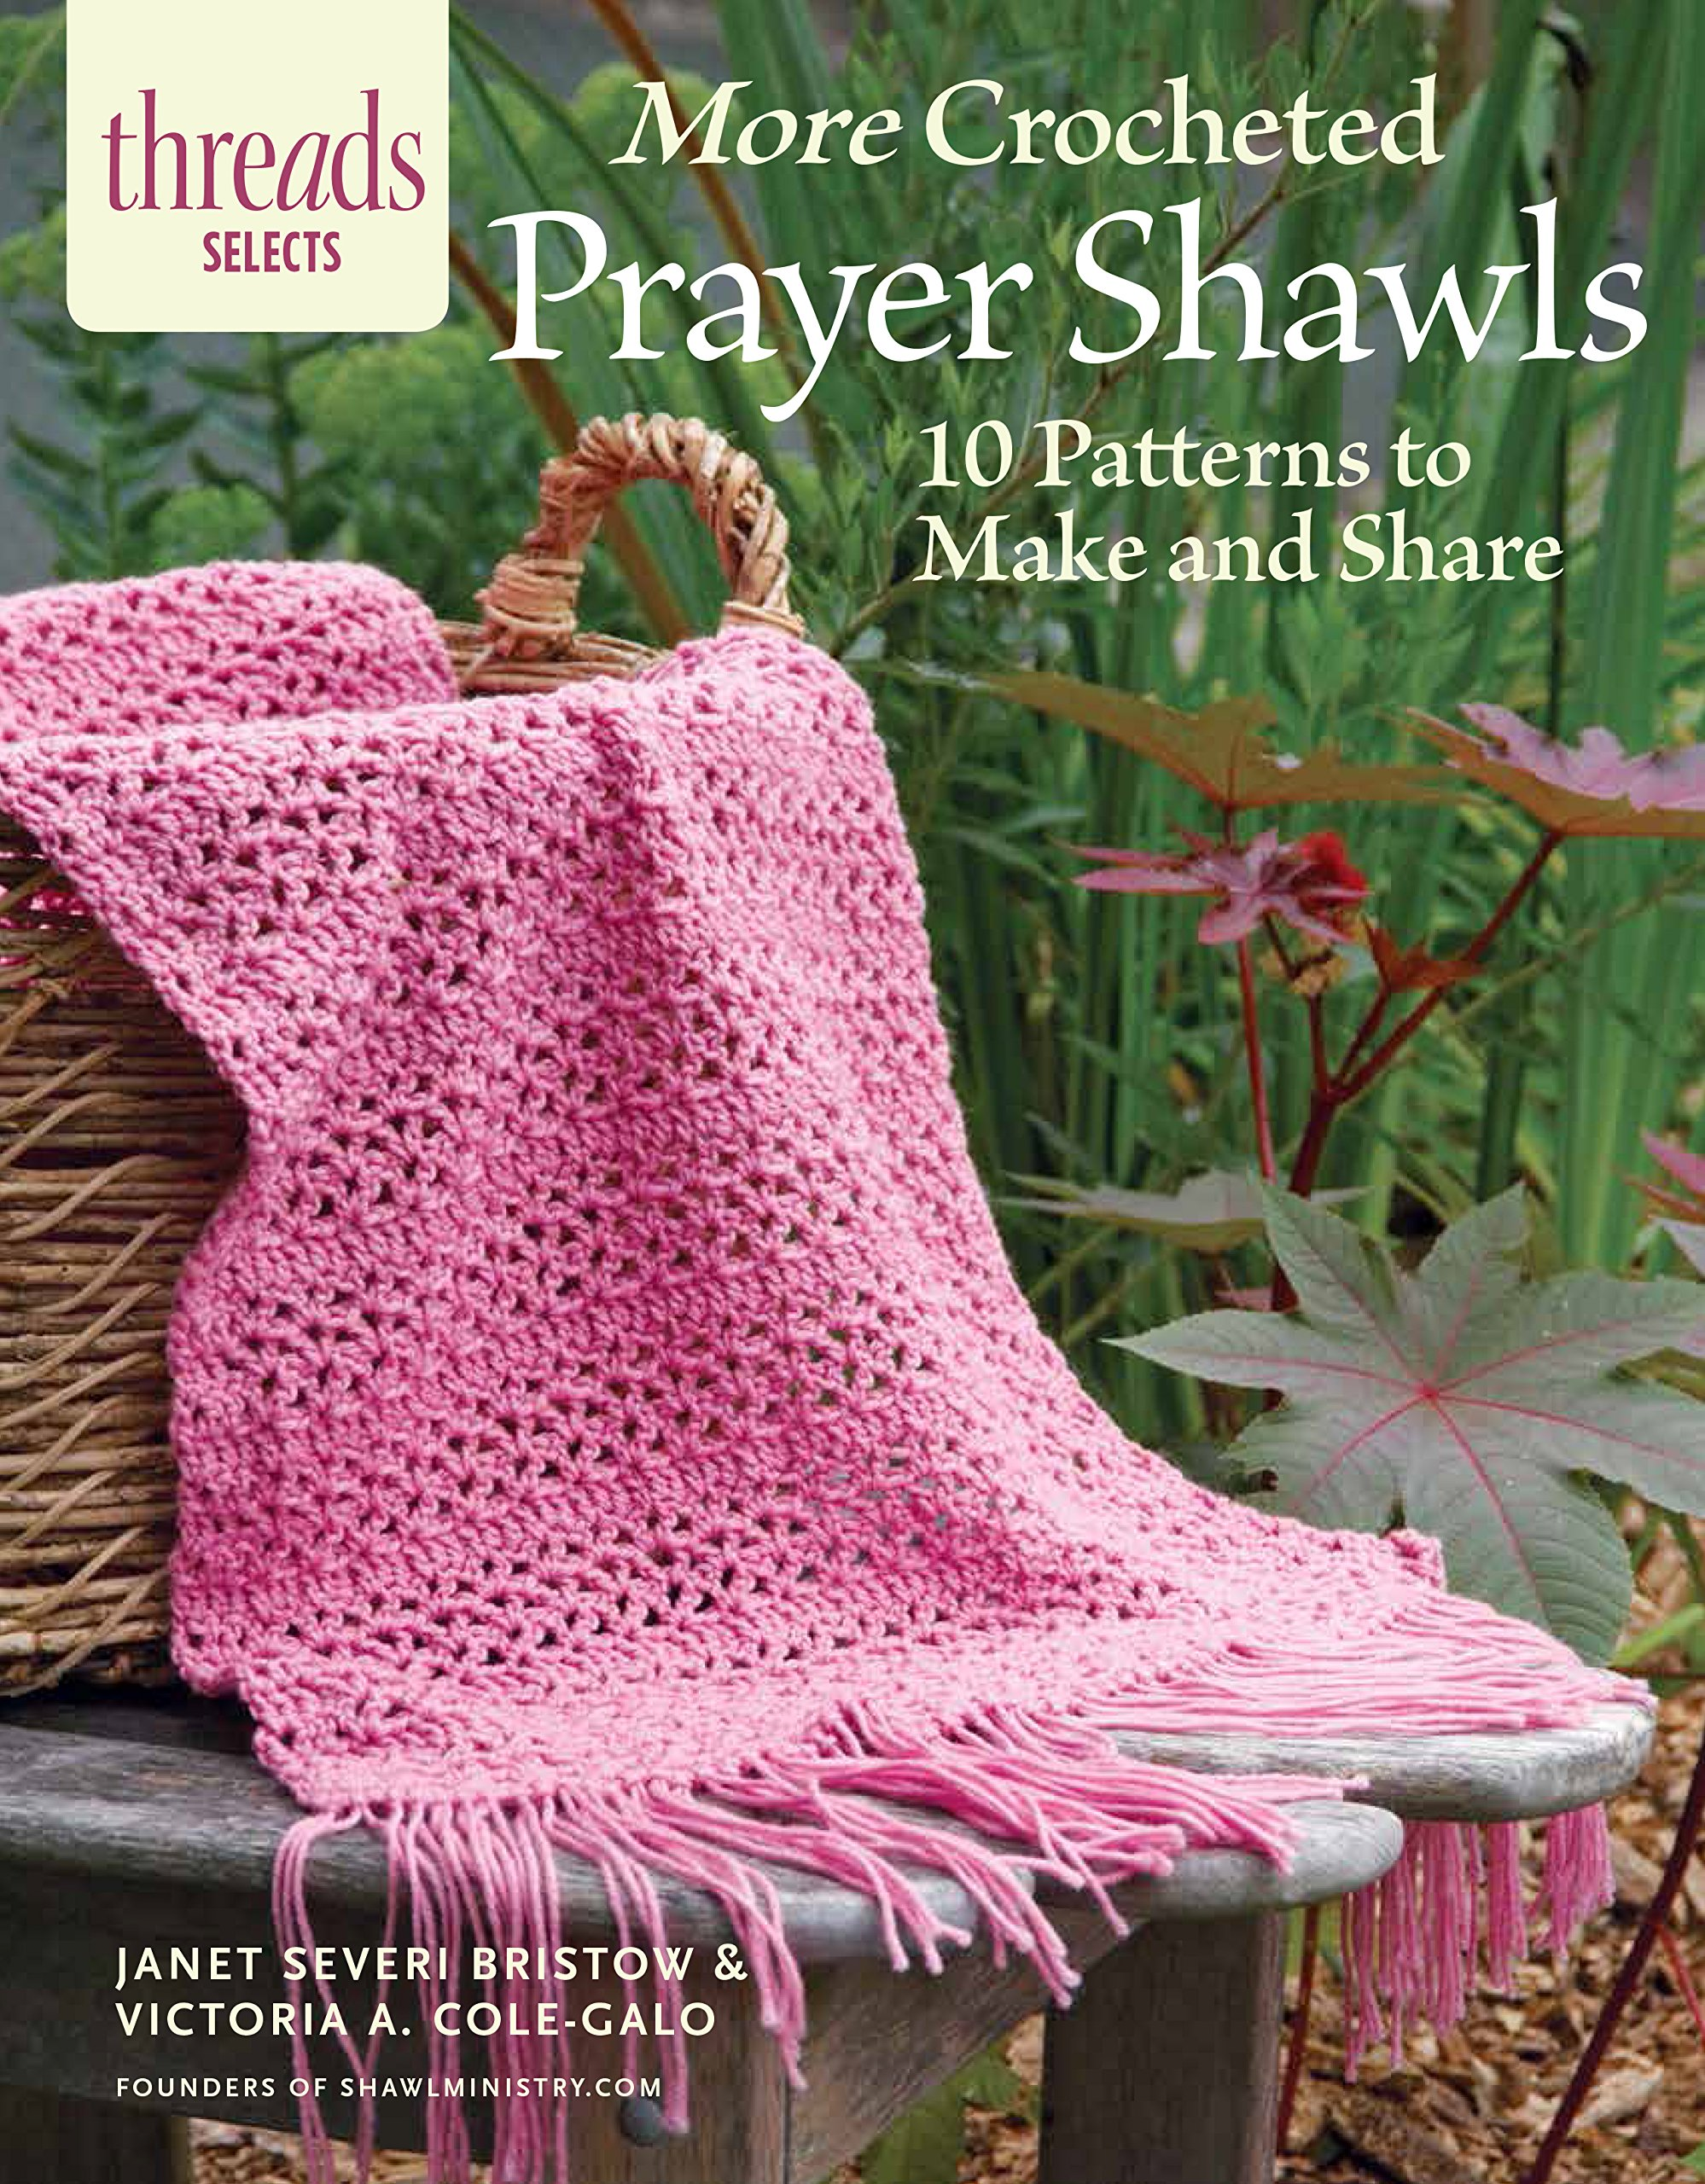 More Crocheted Prayer Shawls Patterns